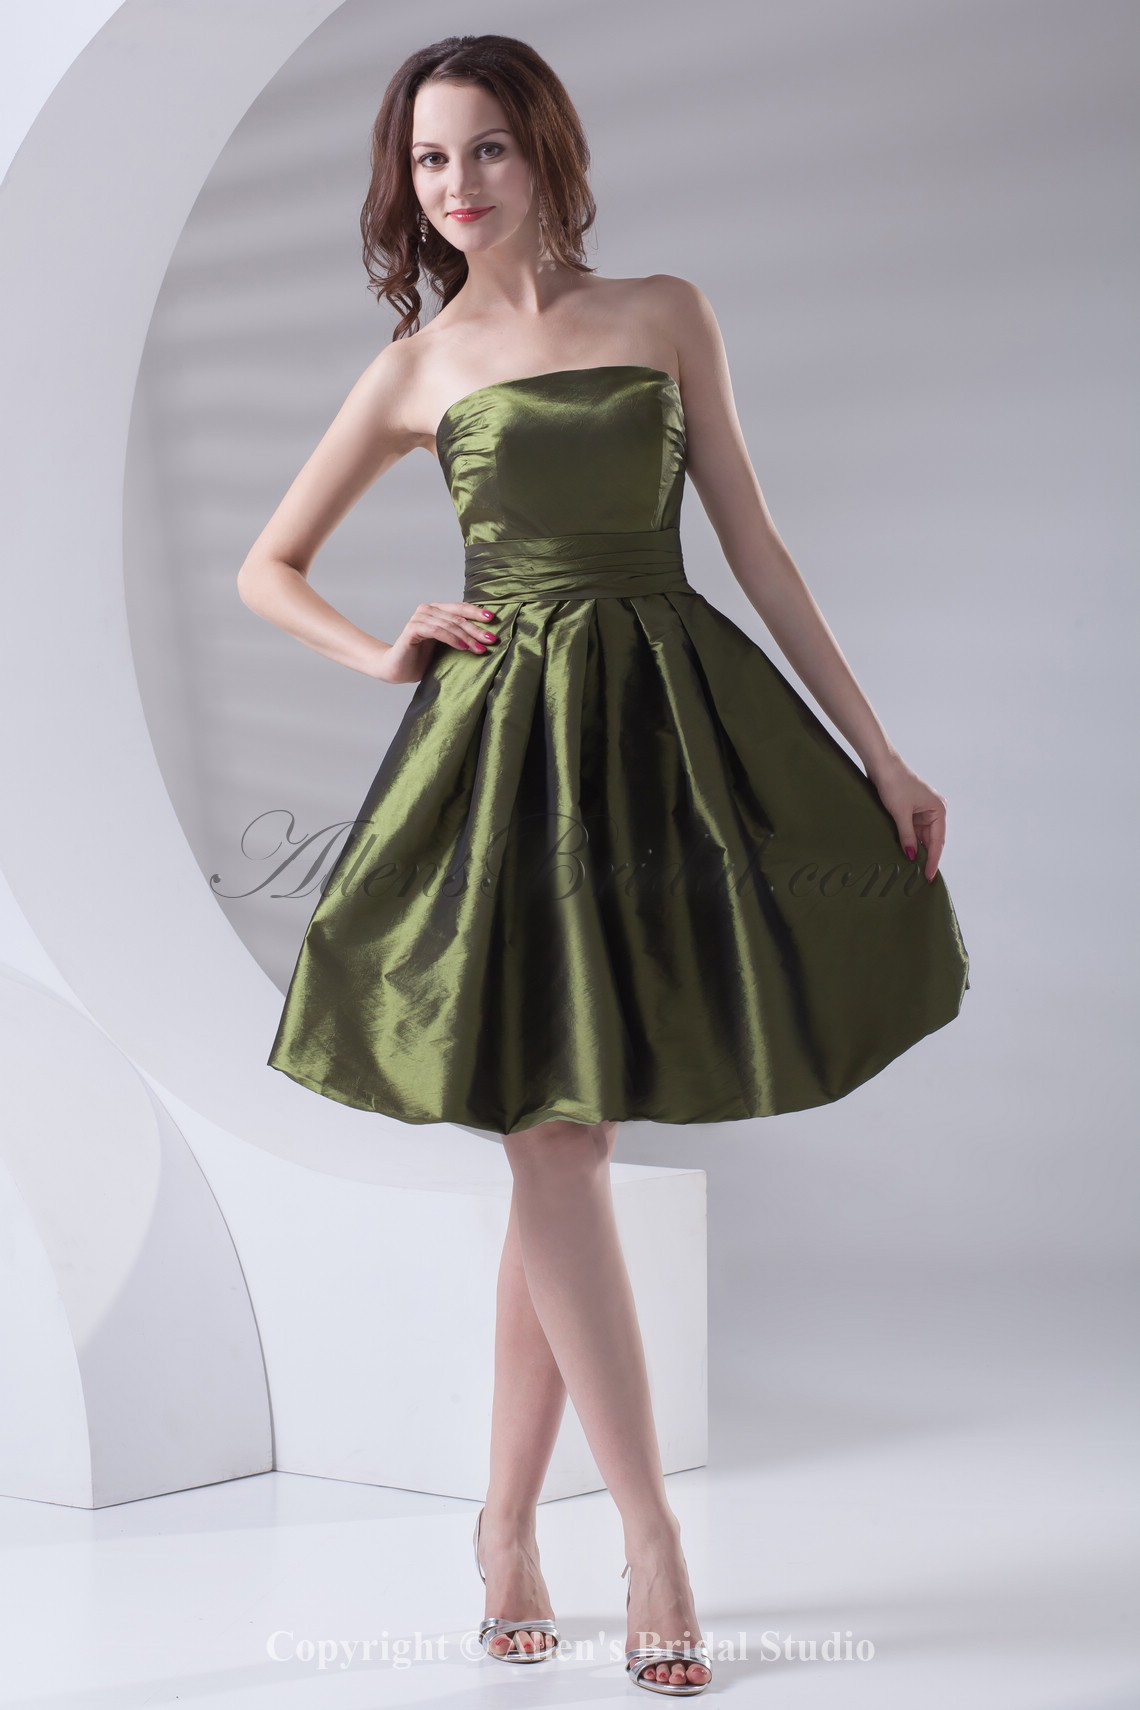 /408-3260/taffeta-strapless-neckline-a-line-knee-length-cocktail-dress.jpg